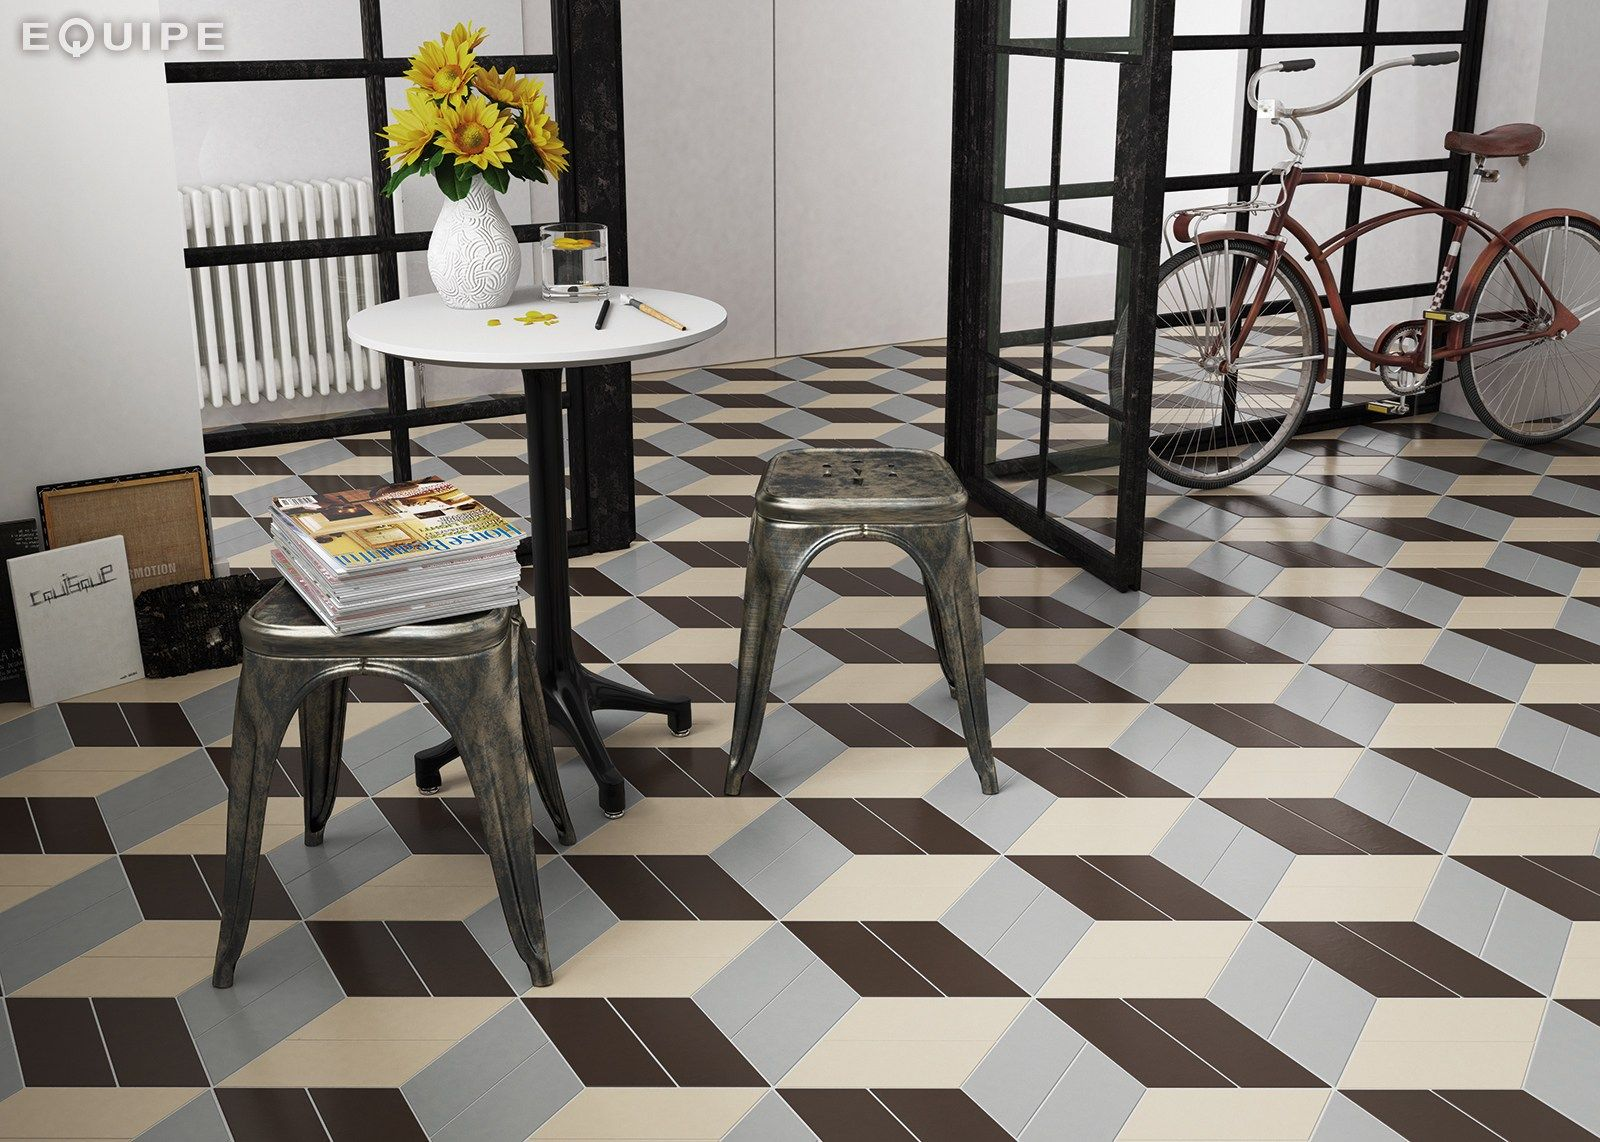 Chevron wallfloor tiles by equipe ceramicas bathroom chevron wallfloor tiles by equipe ceramicas dailygadgetfo Image collections